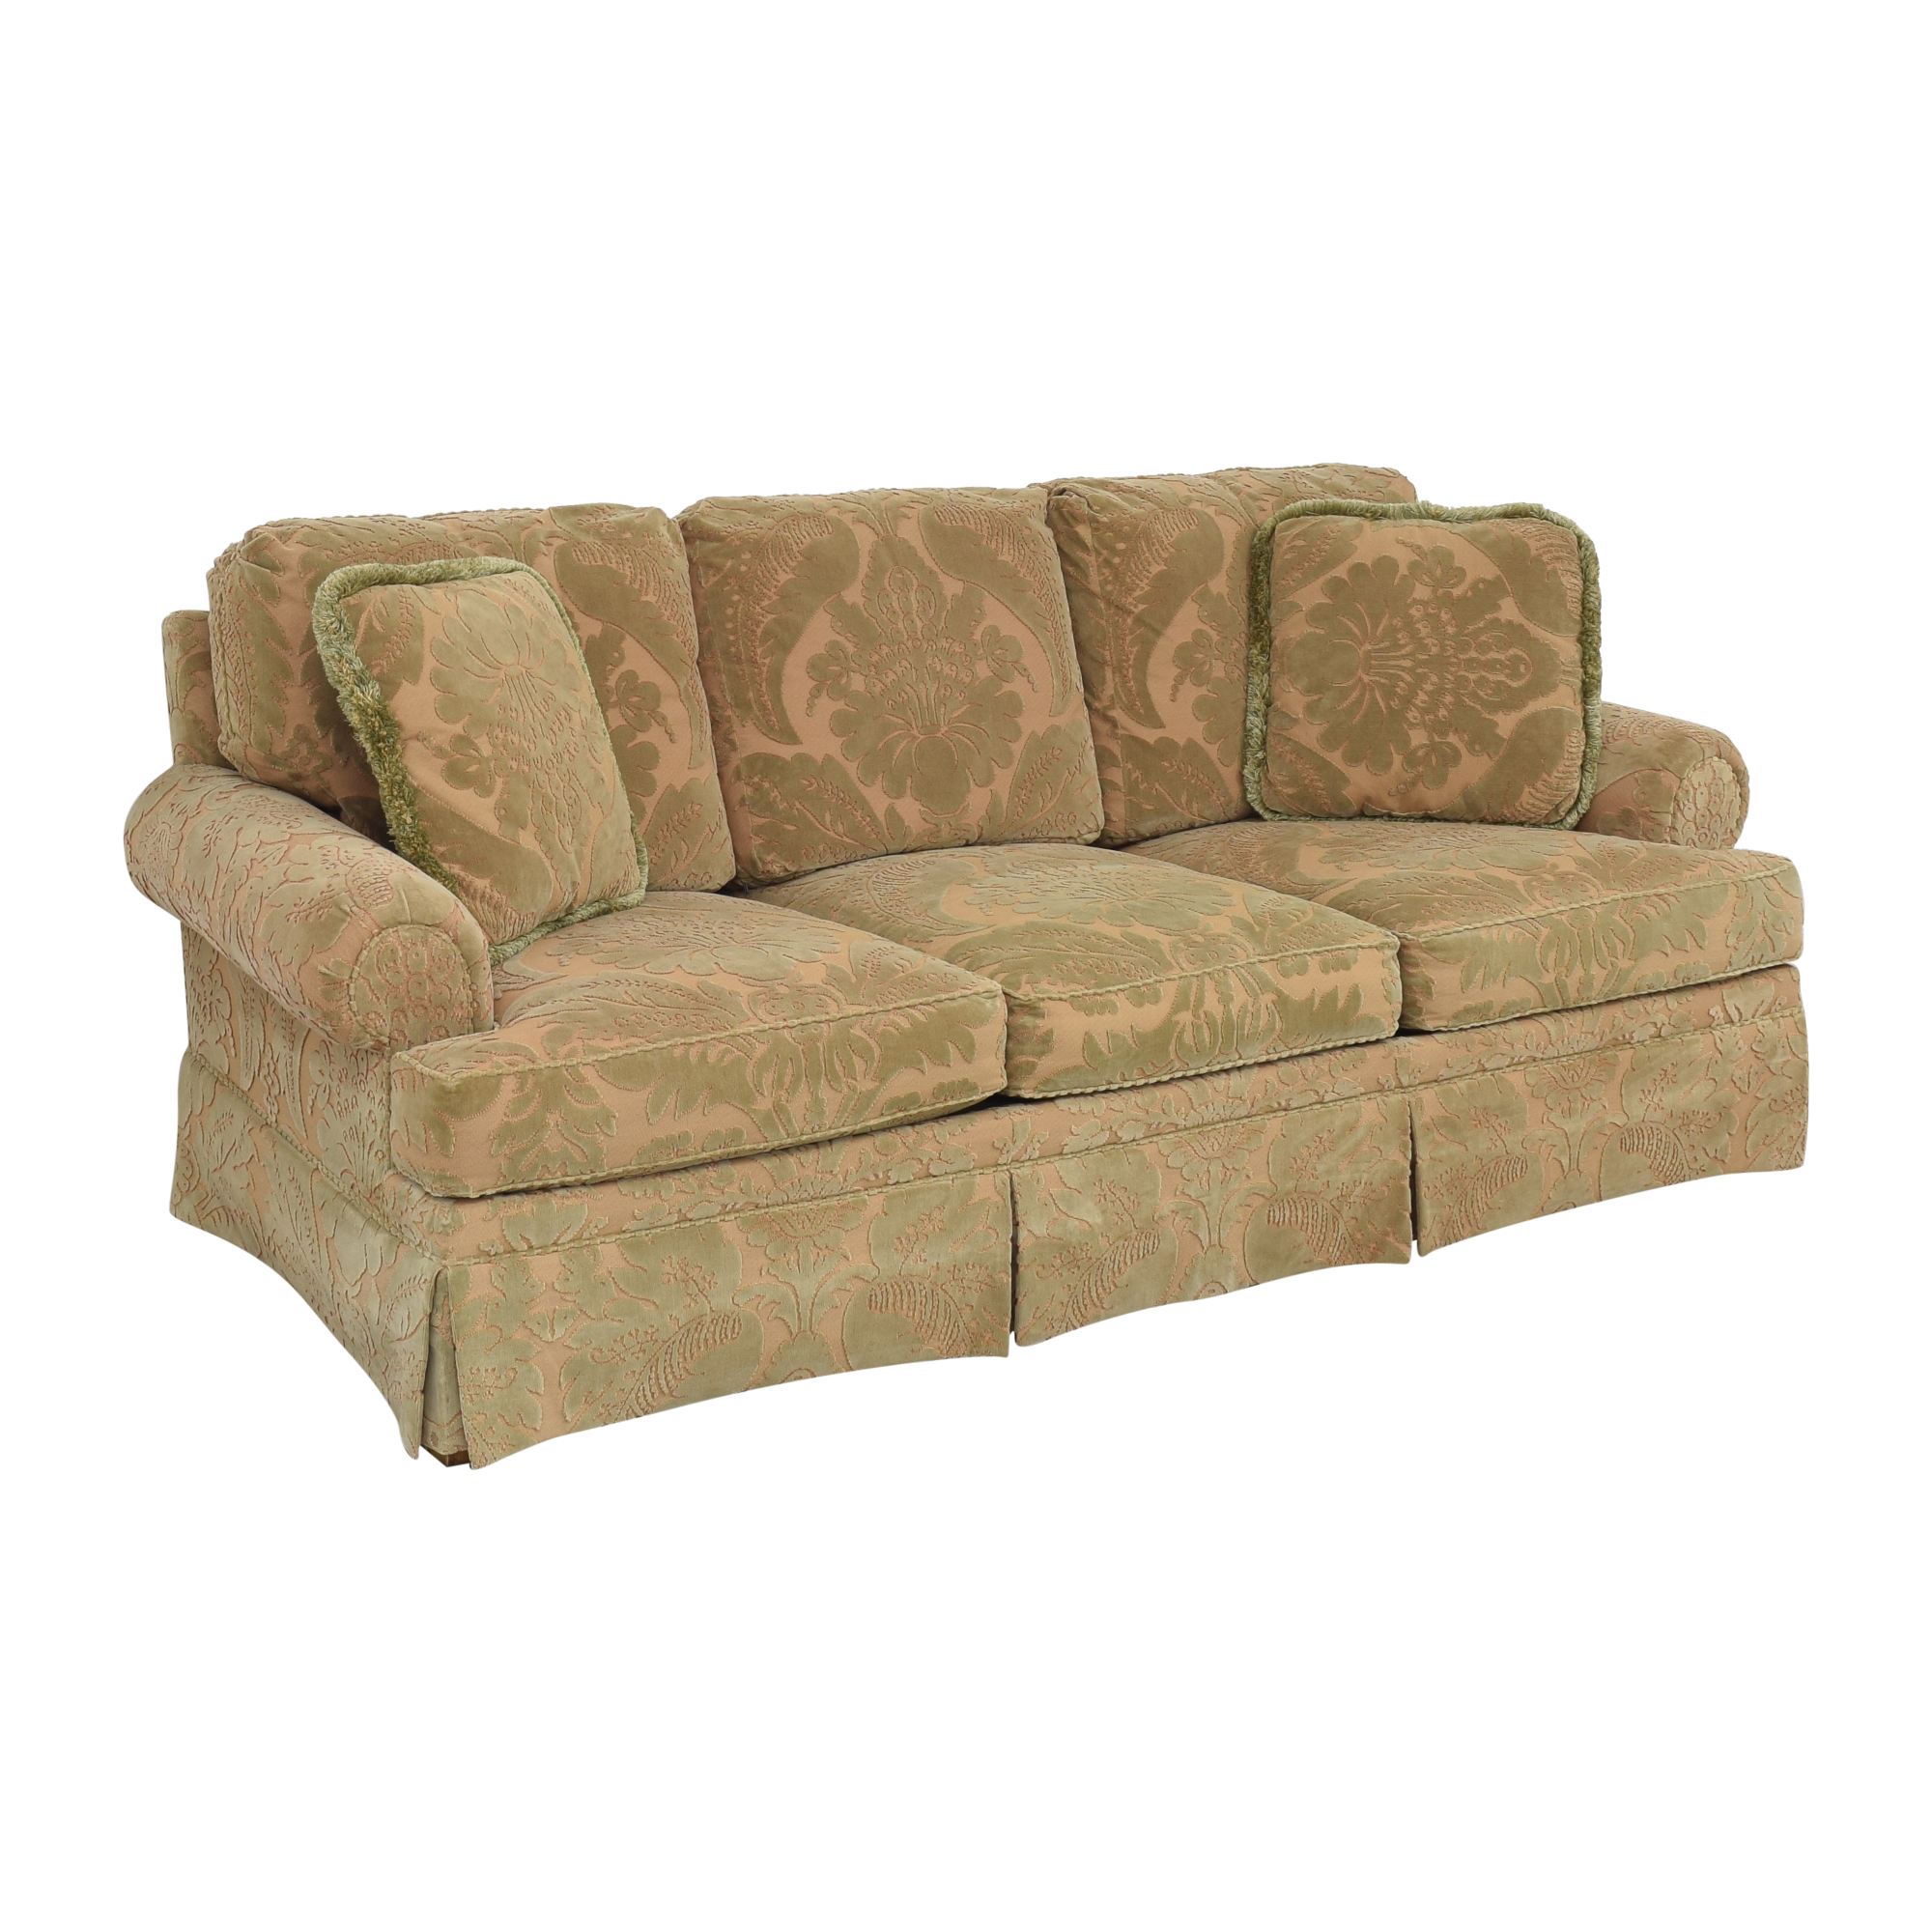 Hickory Chair Hickory Chair Sovereign Collection Devon Sofa for sale